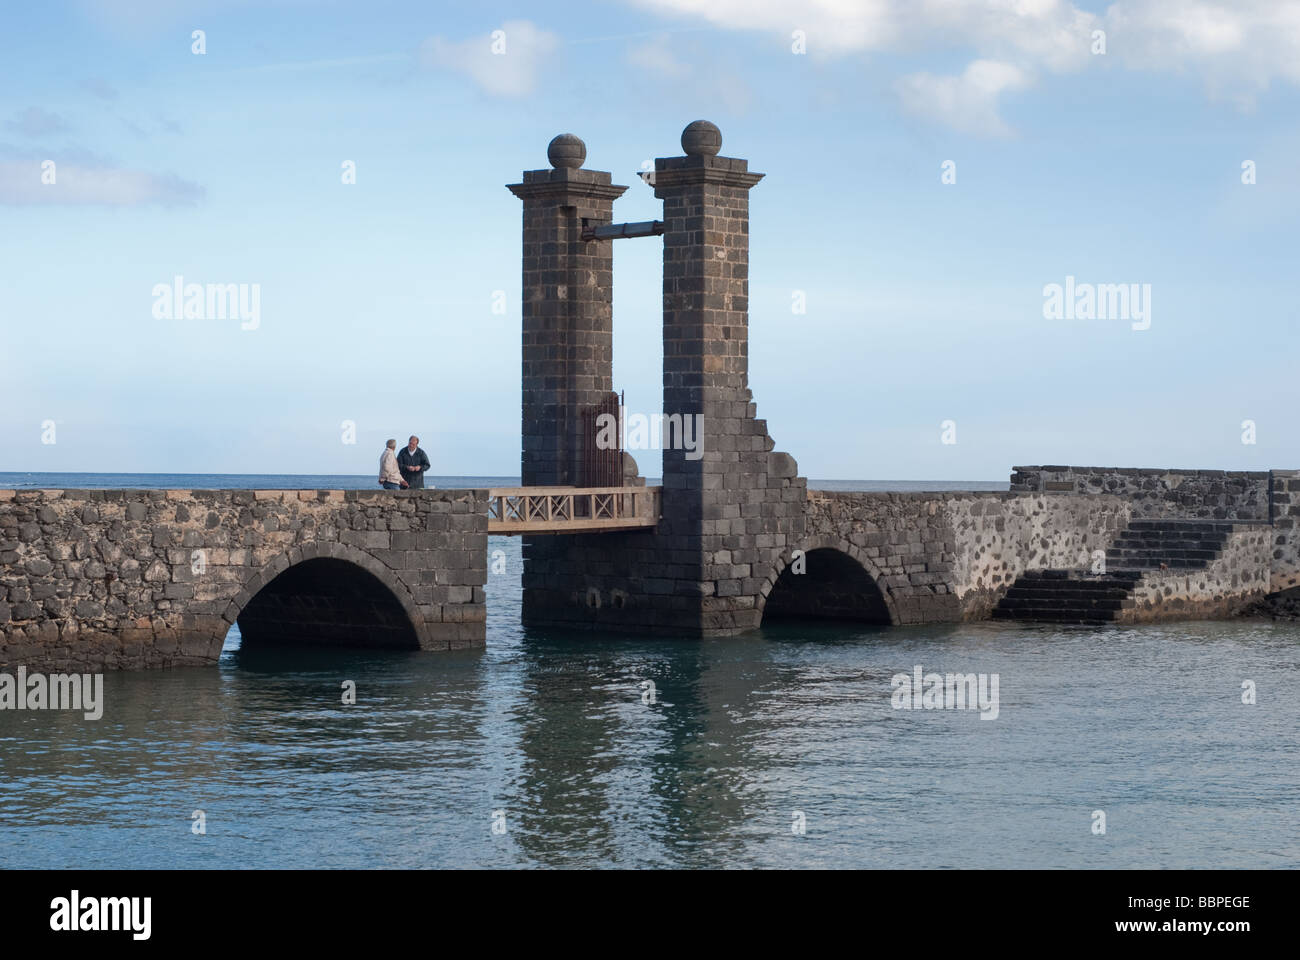 Puente de las Bolas Arrecife, Lanzarote, Spain Stock Photo